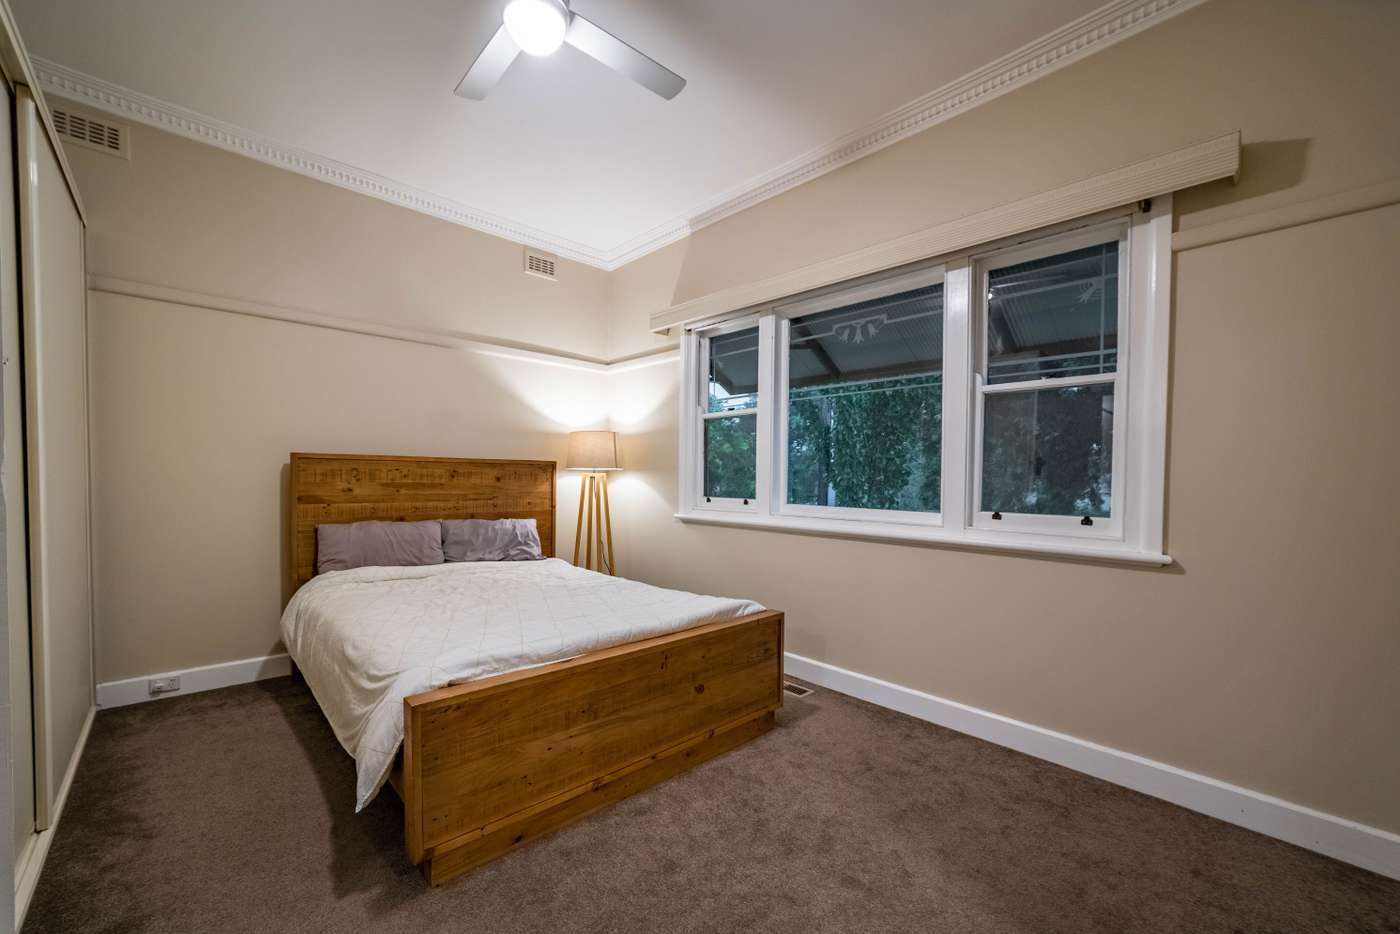 Seventh view of Homely house listing, 133 Wills Street, Bendigo VIC 3550